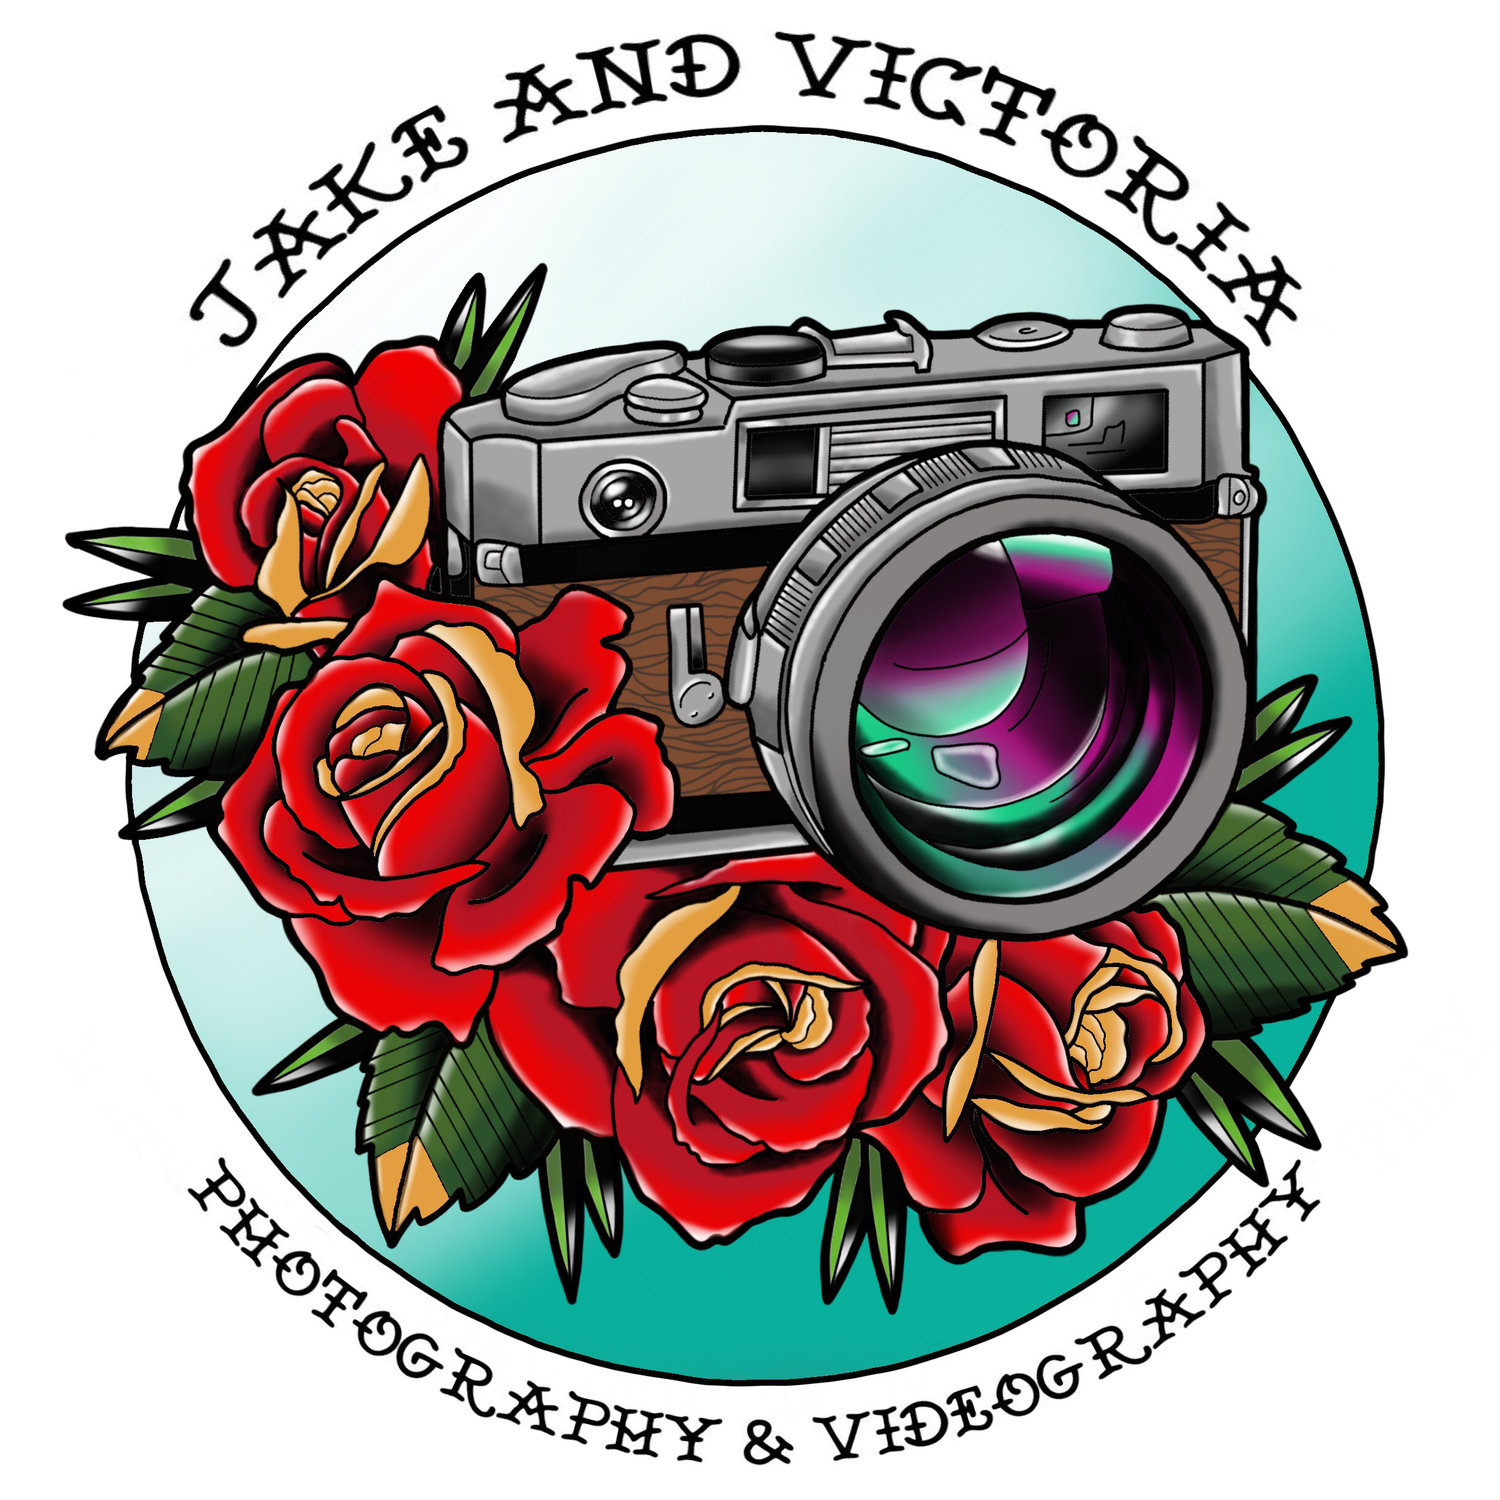 Jake and Victoria Photography & Videography